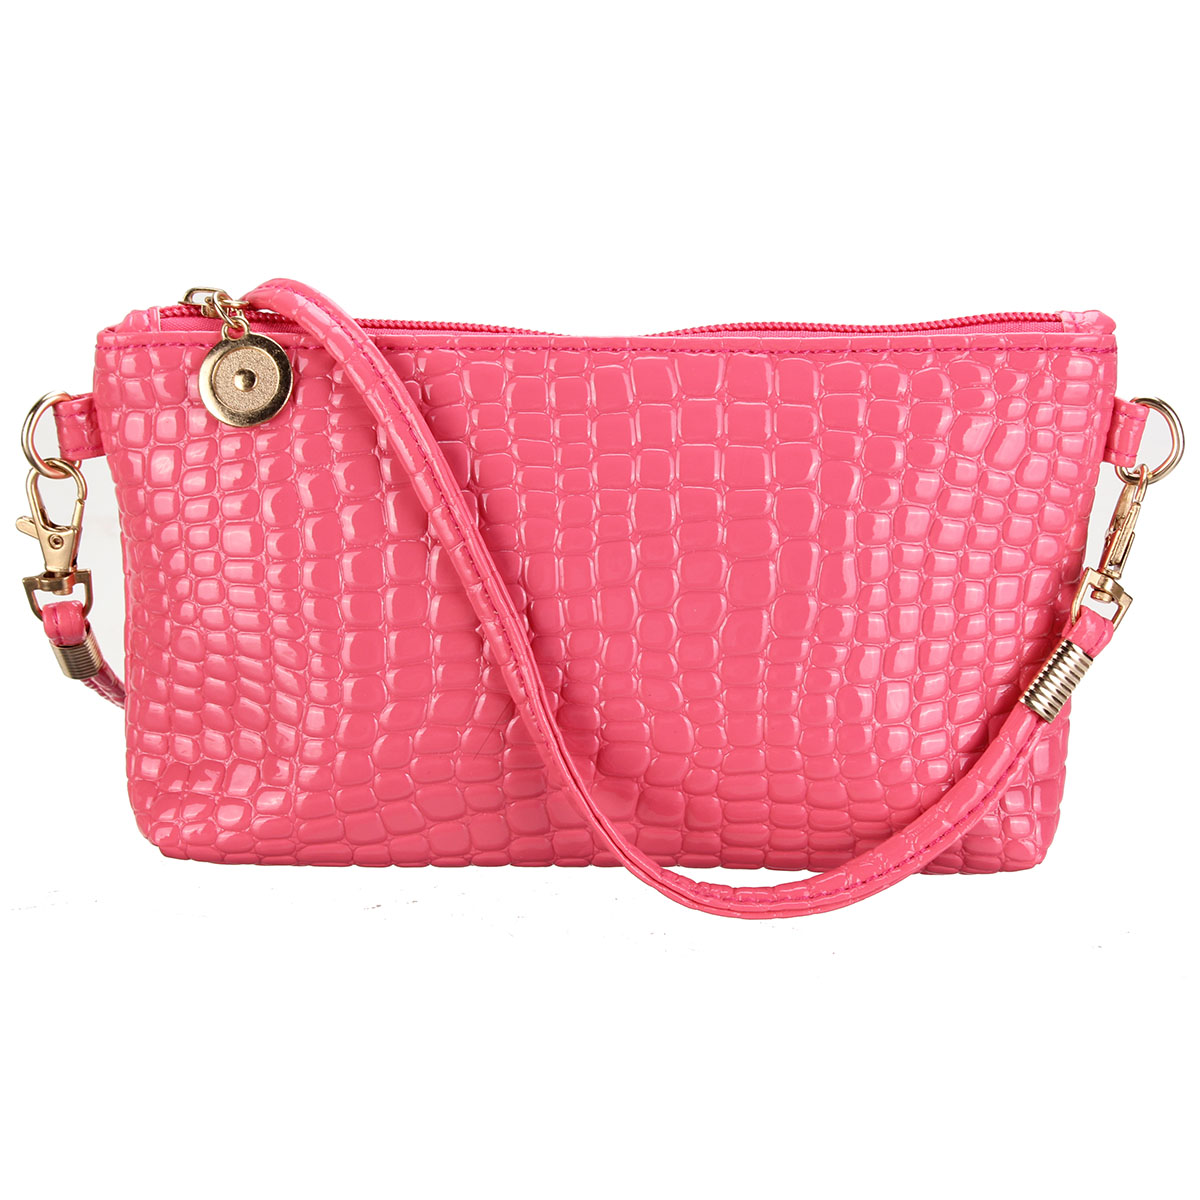 e7f722b180573 Light Pink Evening Bags Related Keywords   Suggestions - Light Pink ...